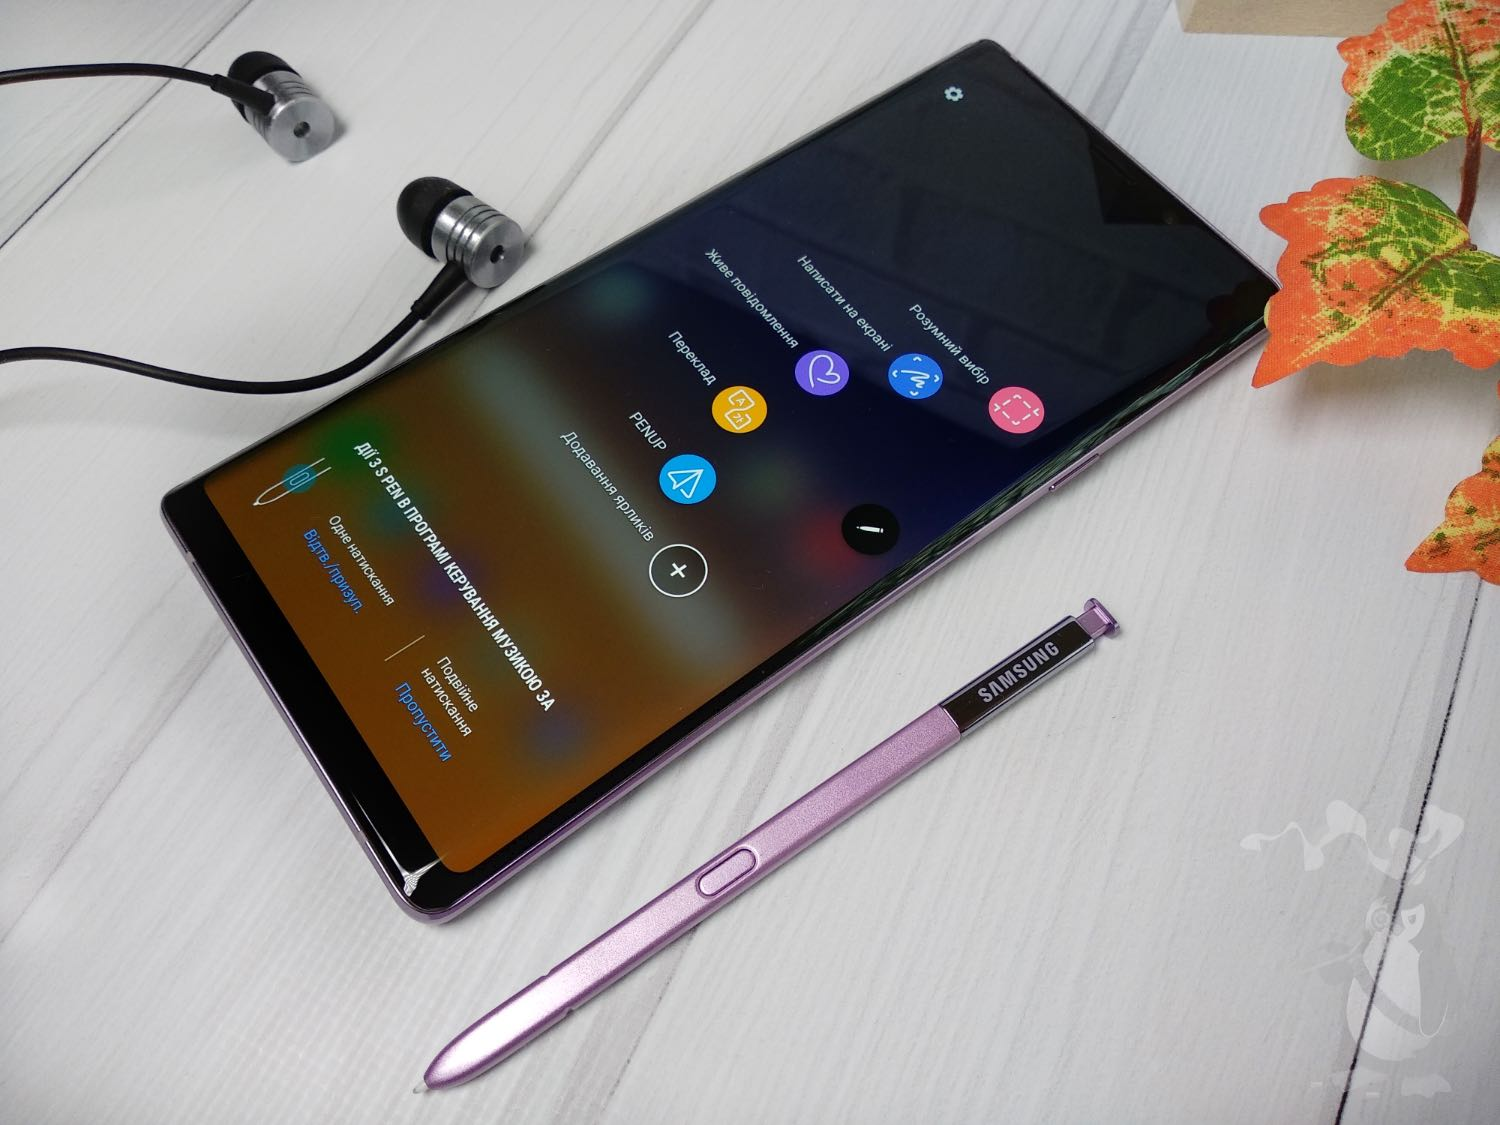 Samsung Galaxy Note9 (S Pen)